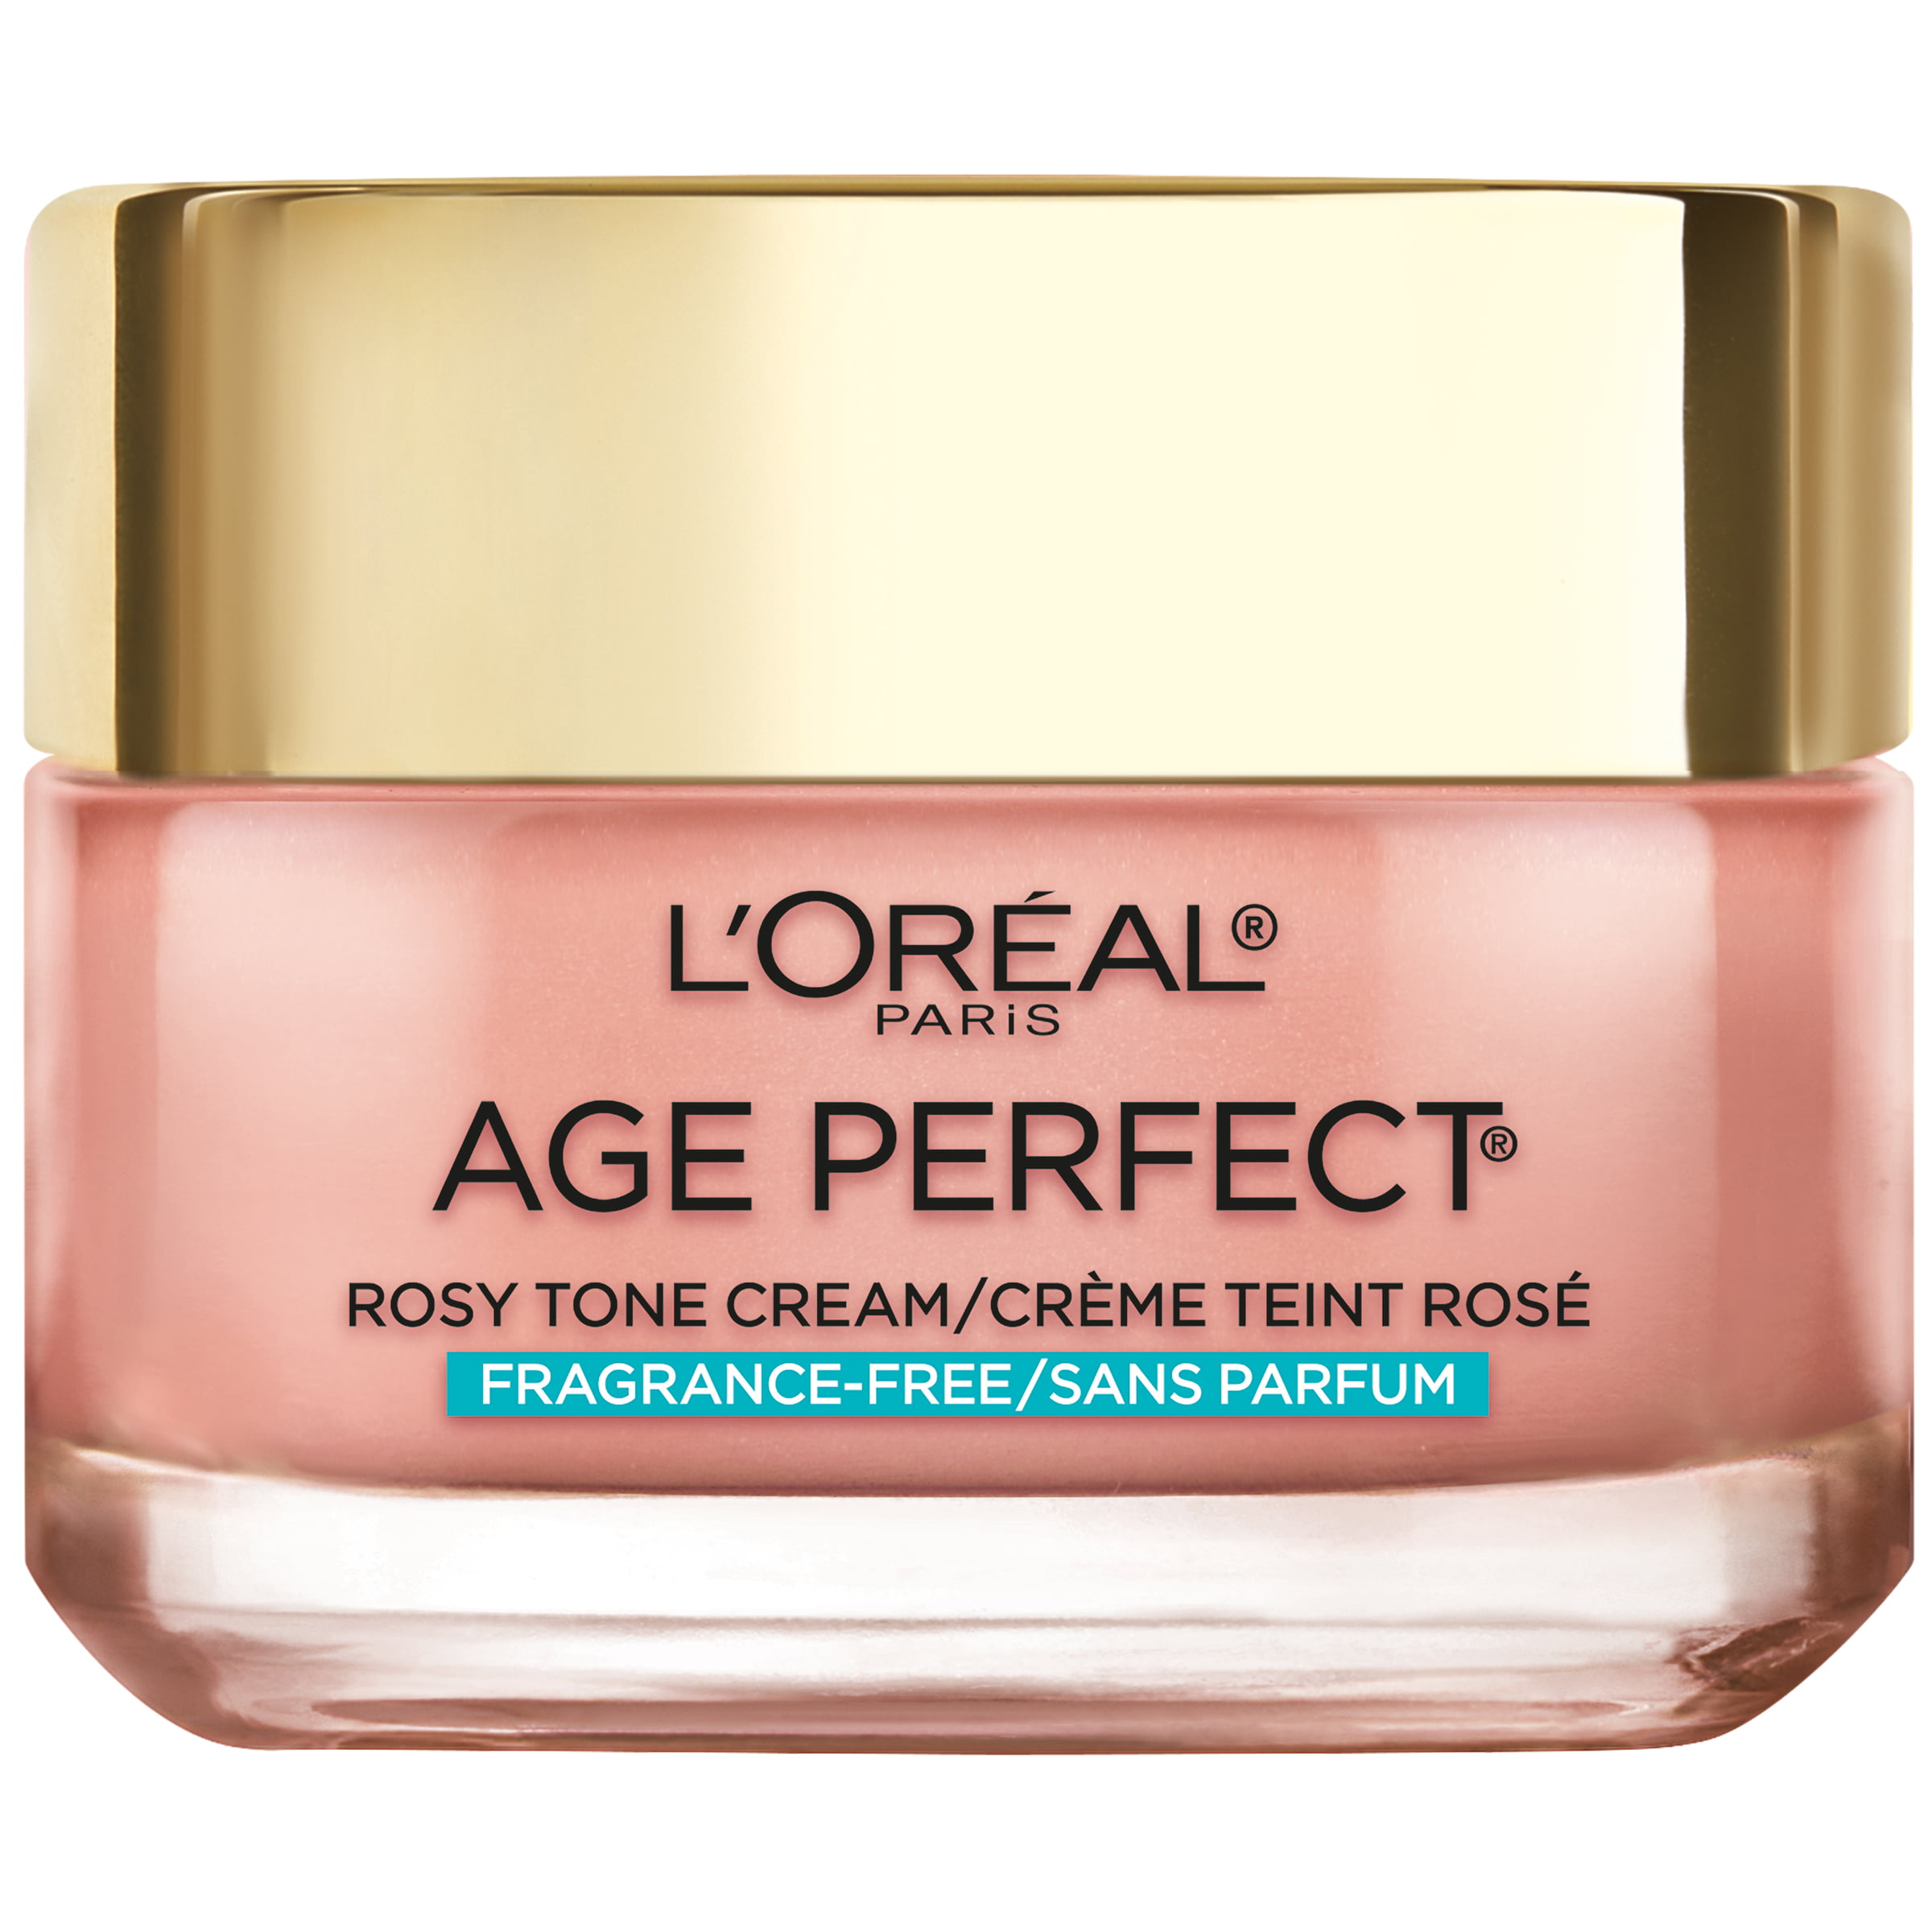 L'Oreal Paris Age Perfect Rosy Tone Fragrance Free Face Moisturizer, 1.7 oz.